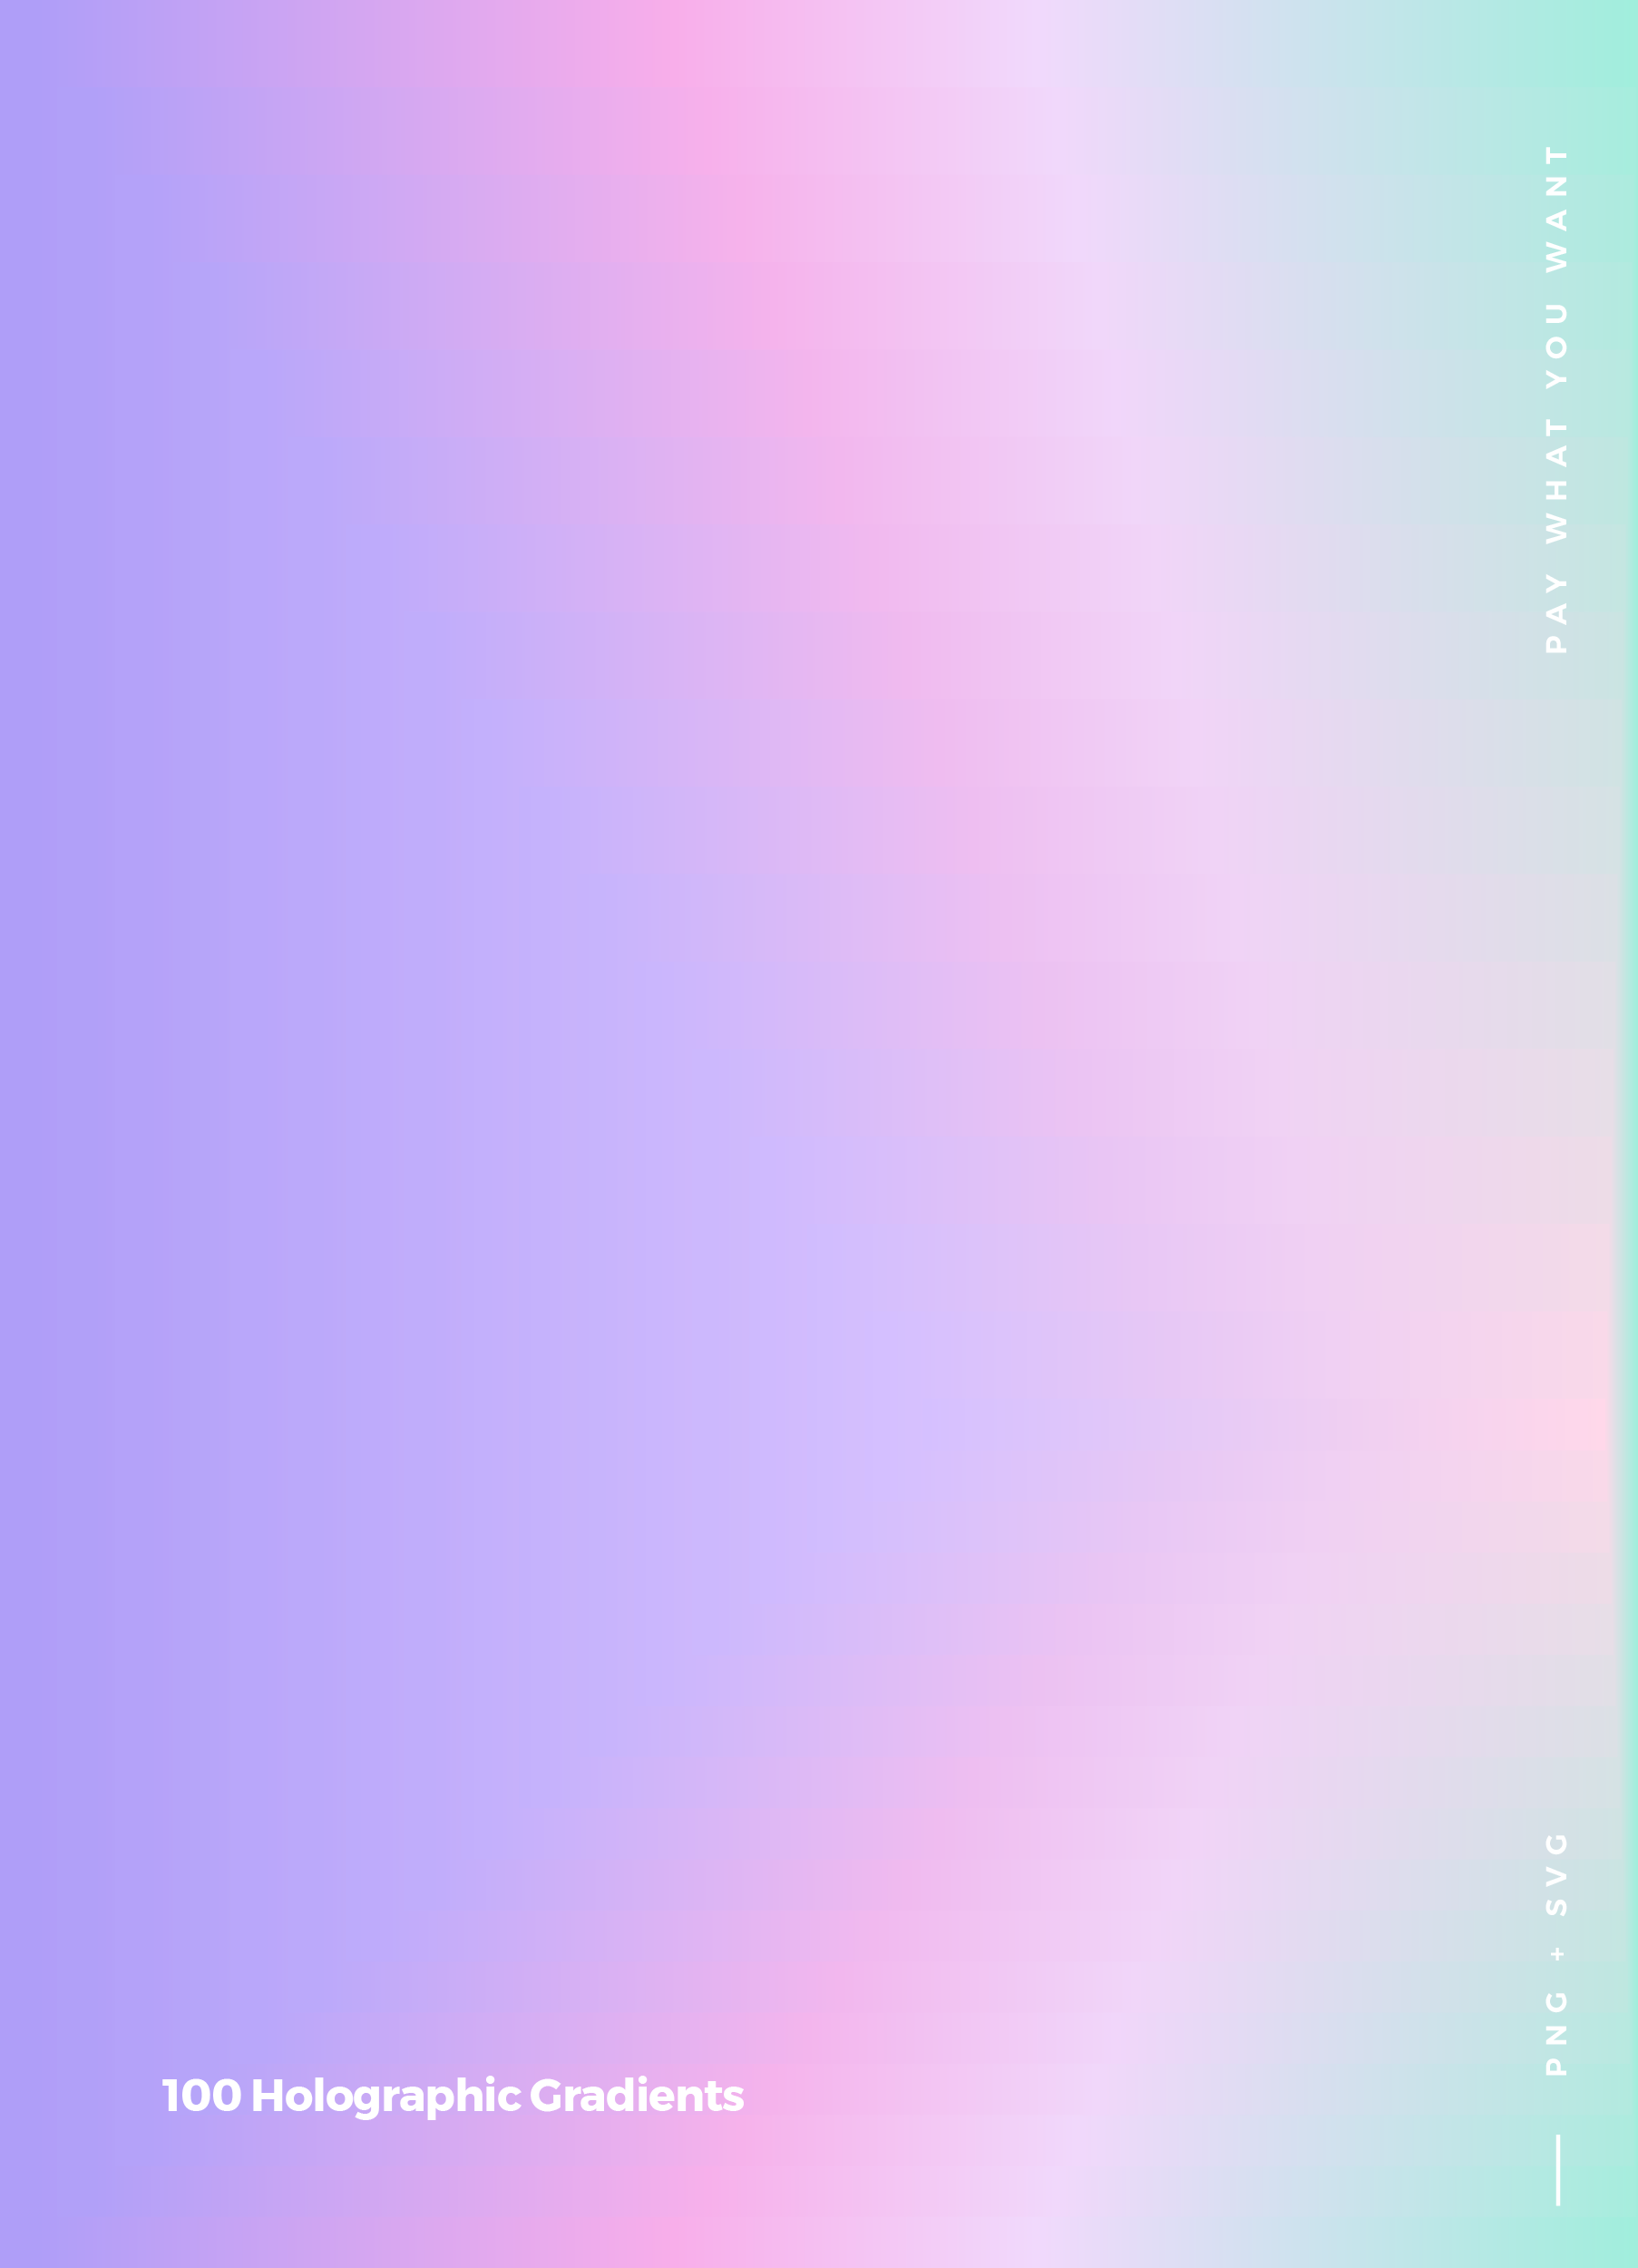 100 Holographic Gradients Svg Png Kiri 1197857 Png Images Pngio